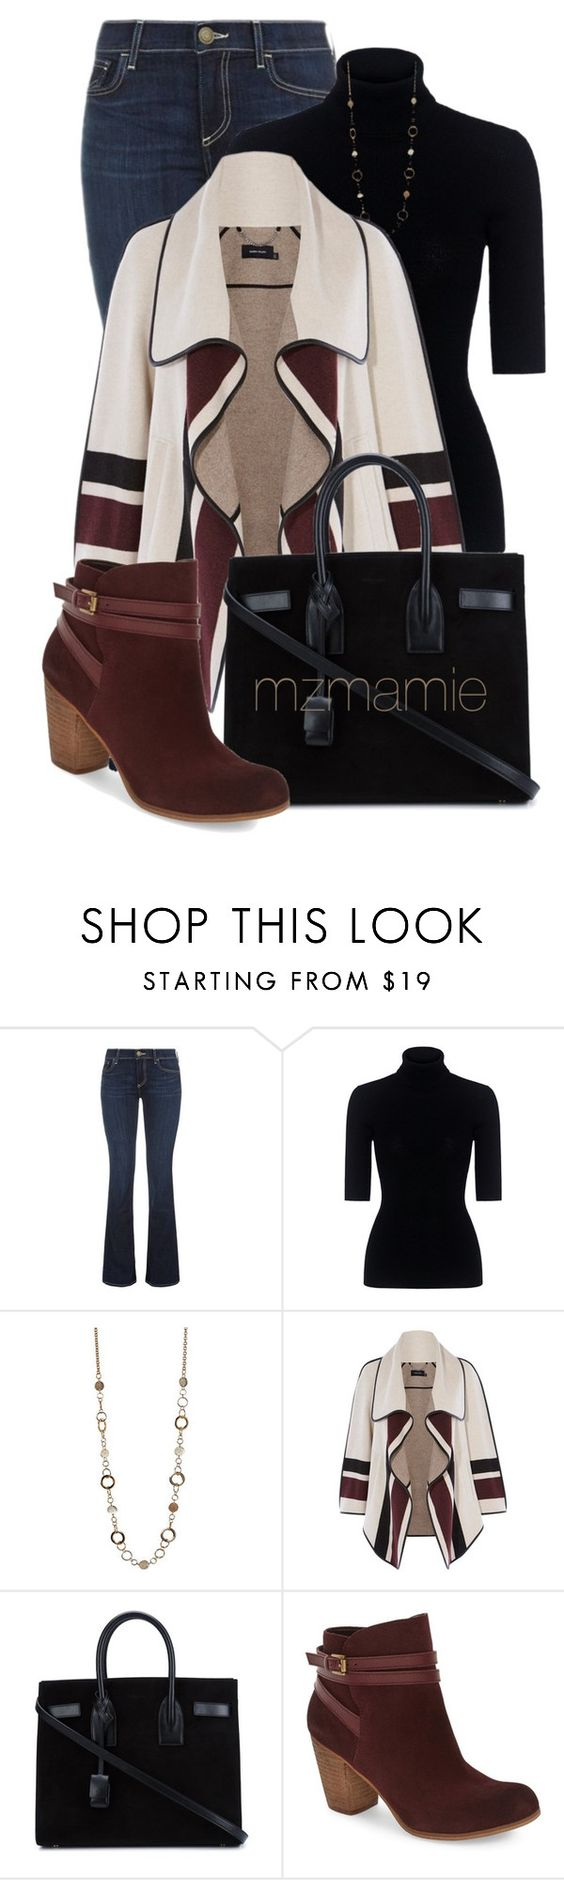 """Untitled #2810"" by mzmamie ❤ liked on Polyvore featuring True Religion, Theory, Karen Millen, Yves Saint Laurent and BP."